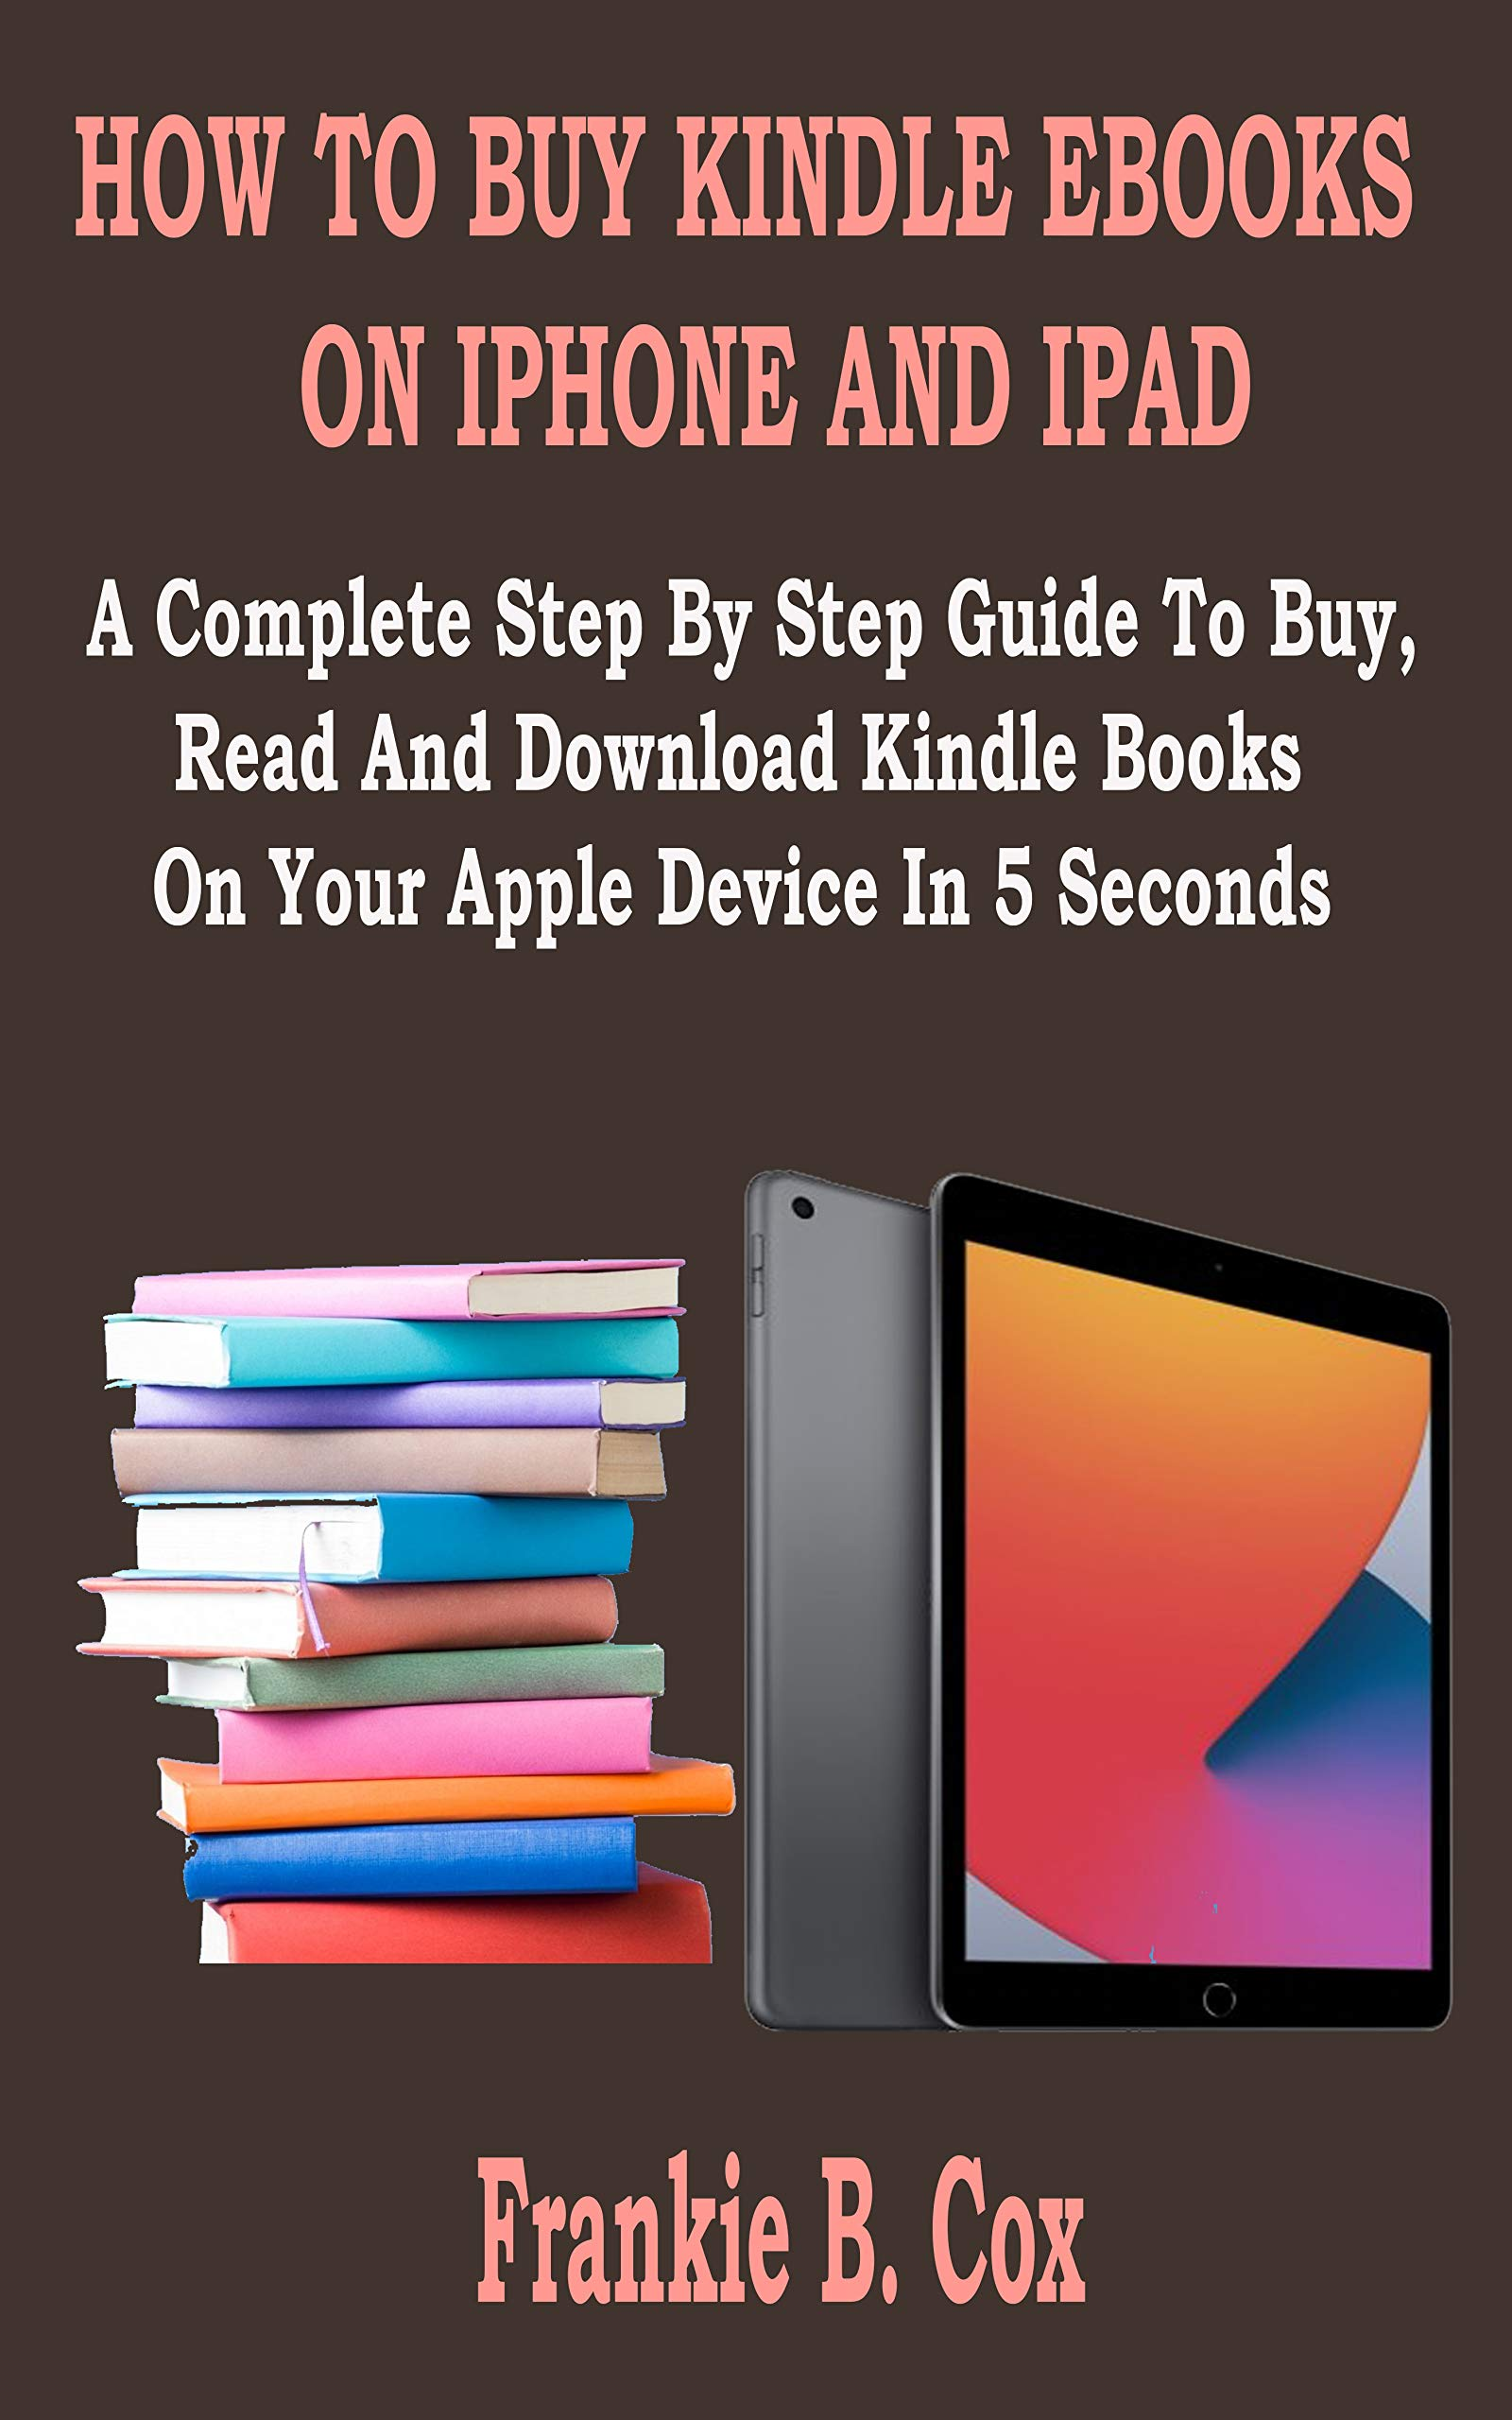 HOW TO BUY KINDLE EBOOKS ON IPHONE AND IPAD: A Complete Step By Step Guide To Buy, Read And Download Kindle Books On Your Apple Device In 5 Seconds